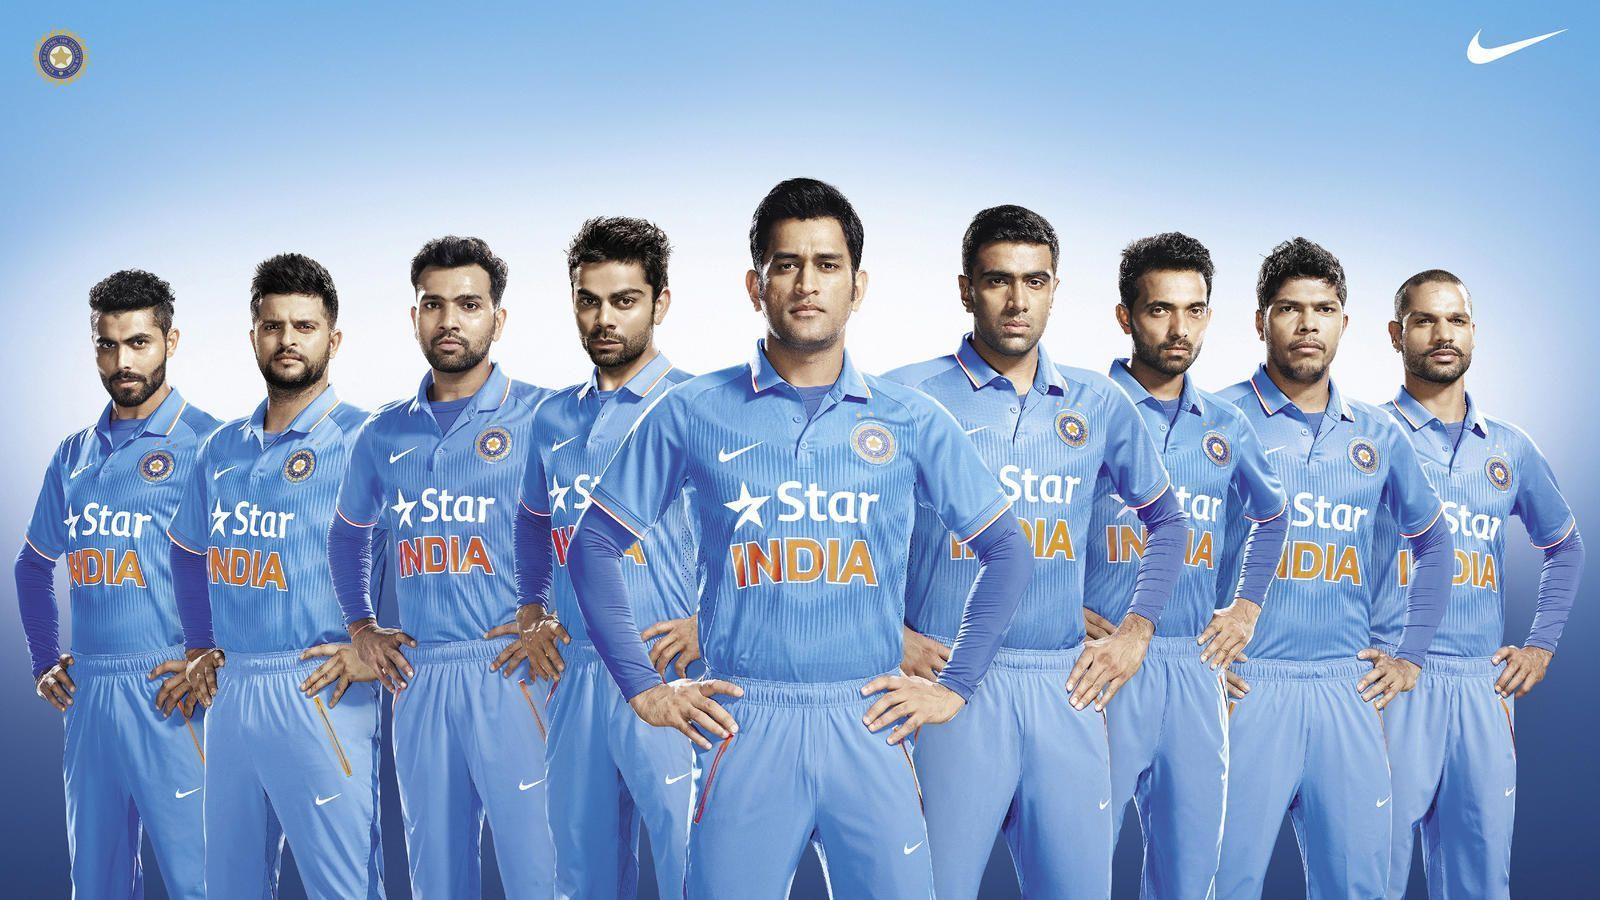 Indian Cricket Team Wallpapers